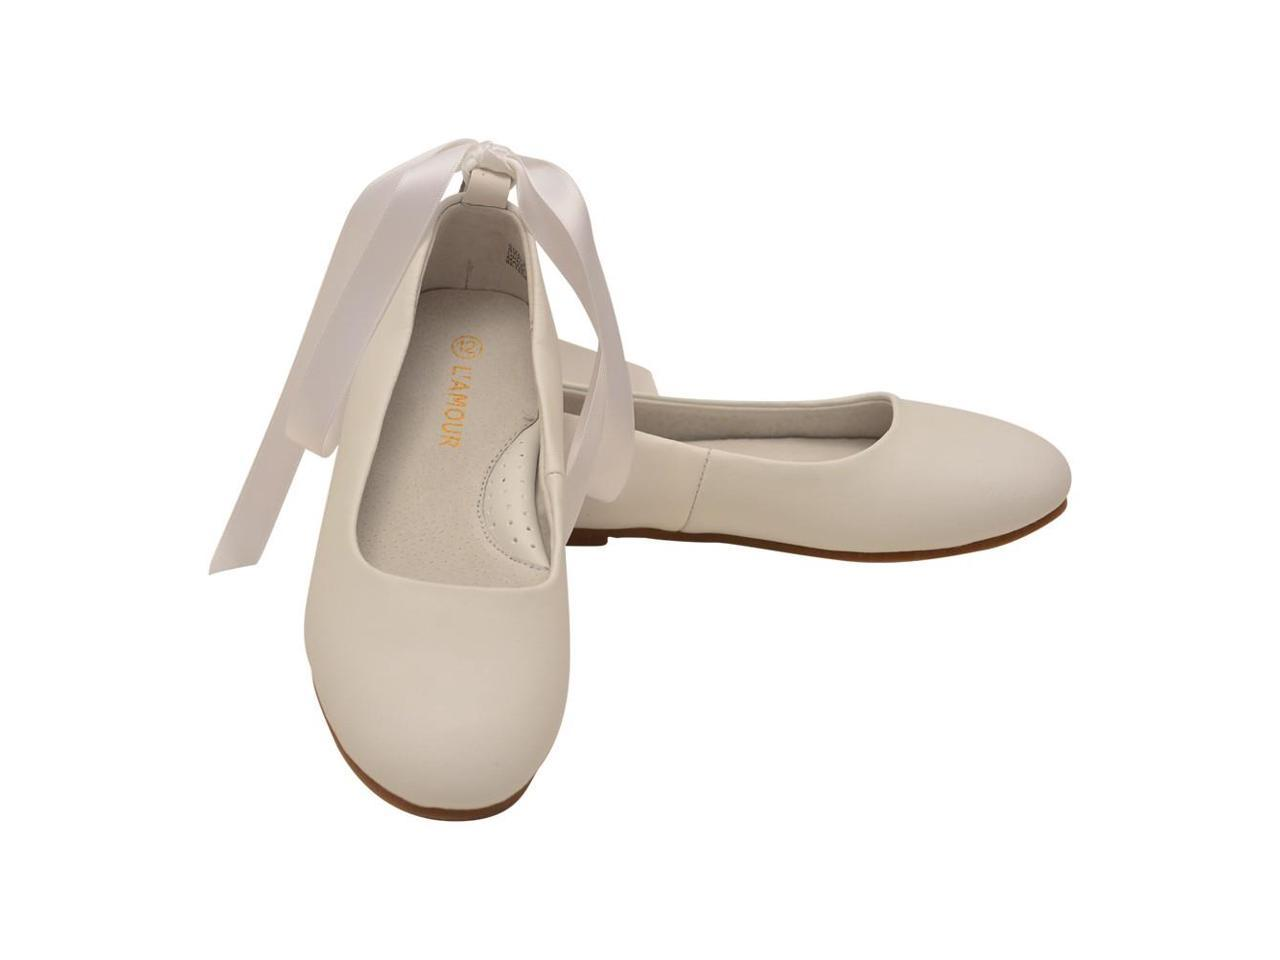 L'Amour Little Strap Girls White Leather Removable Satin Strap Little Flats 9 Toddler 52d4b6